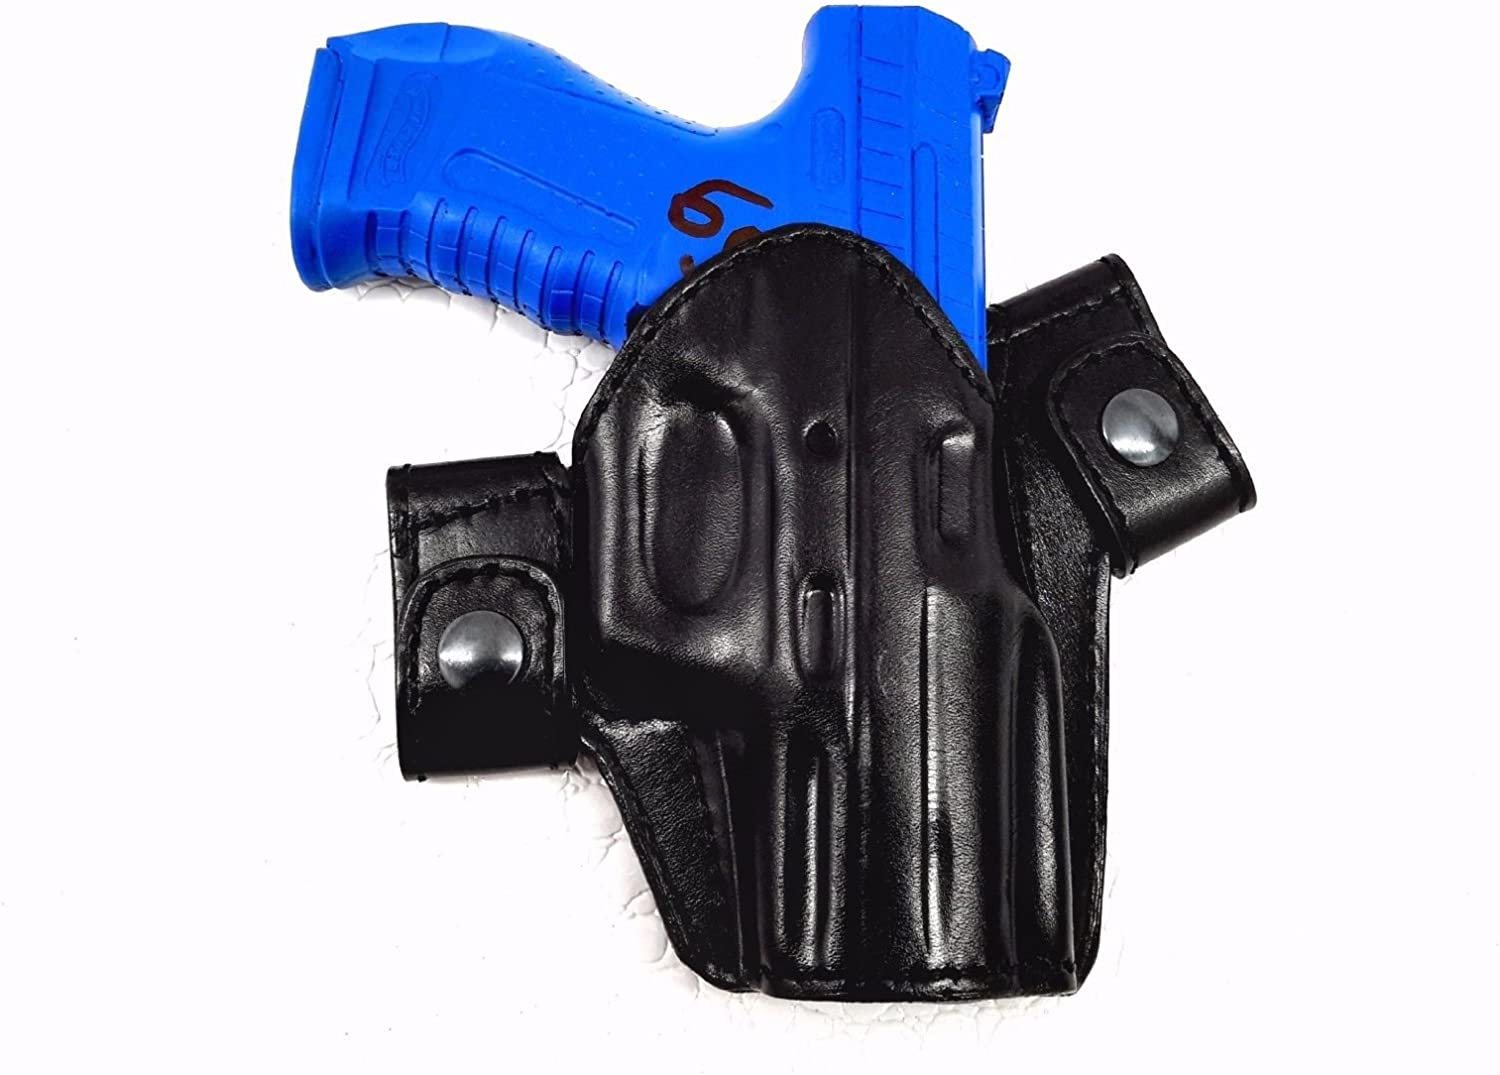 Dual Snap Holster for Beretta 92FS, MyHolster